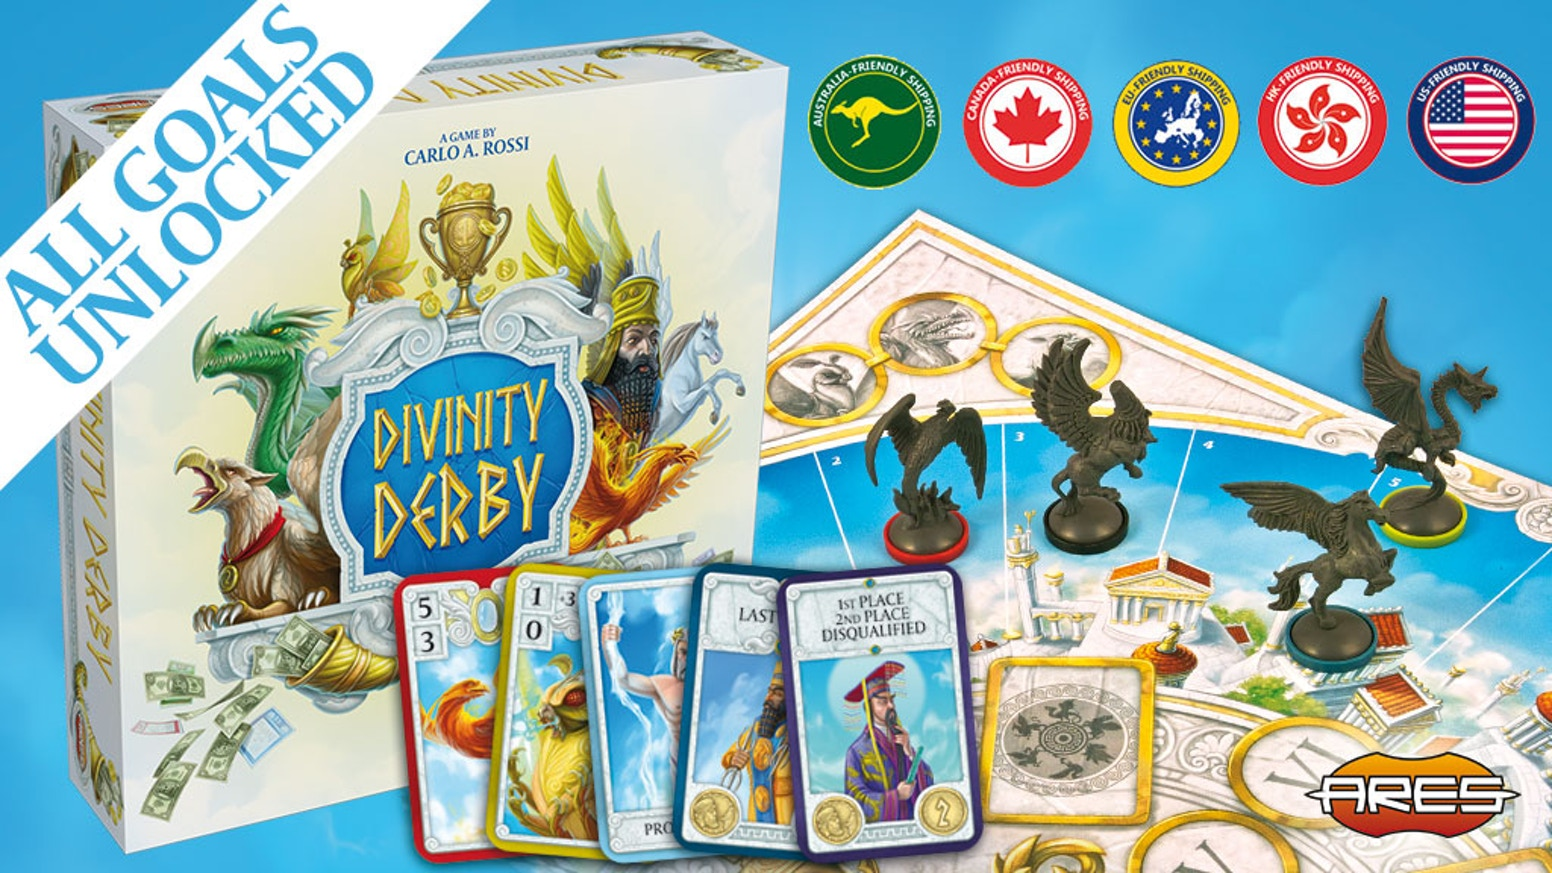 A party on Mount Olympus turns into a crazy race of legendary creatures. An easy and fun boardgame, rich in strategy and interaction.